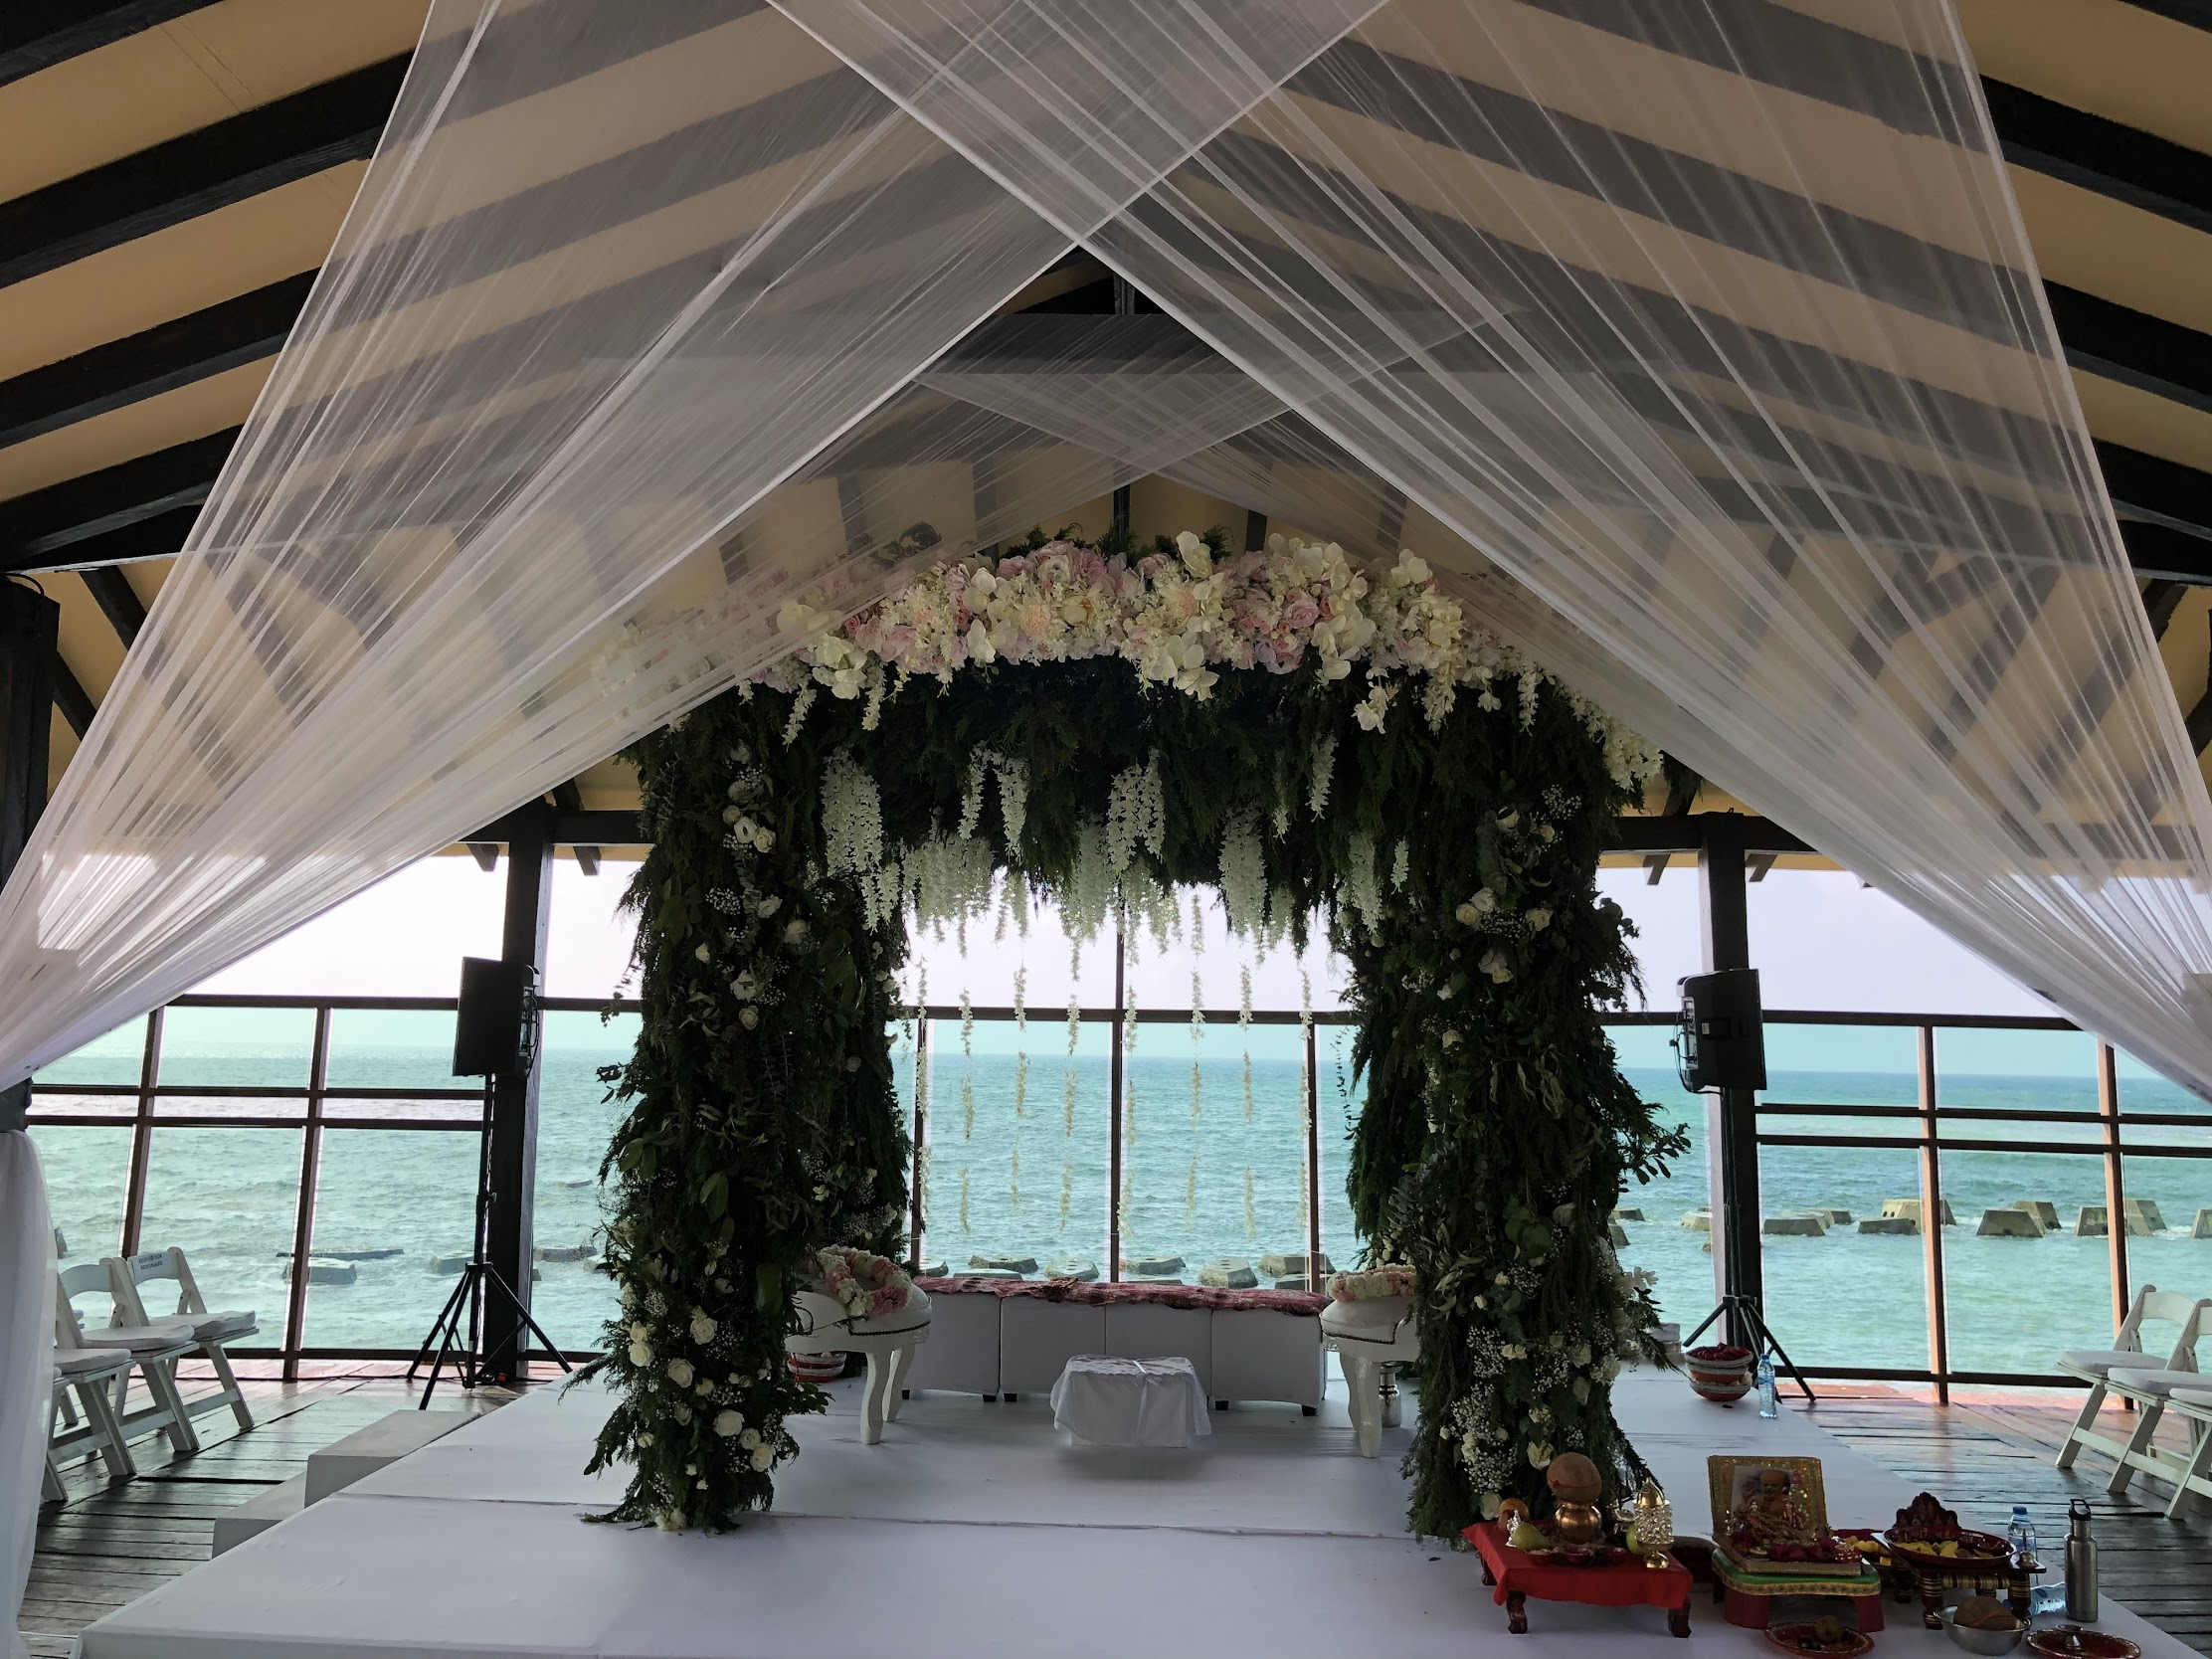 hindu wedding on the pier of generations riviera maya in mexico by latin asia one stop solution